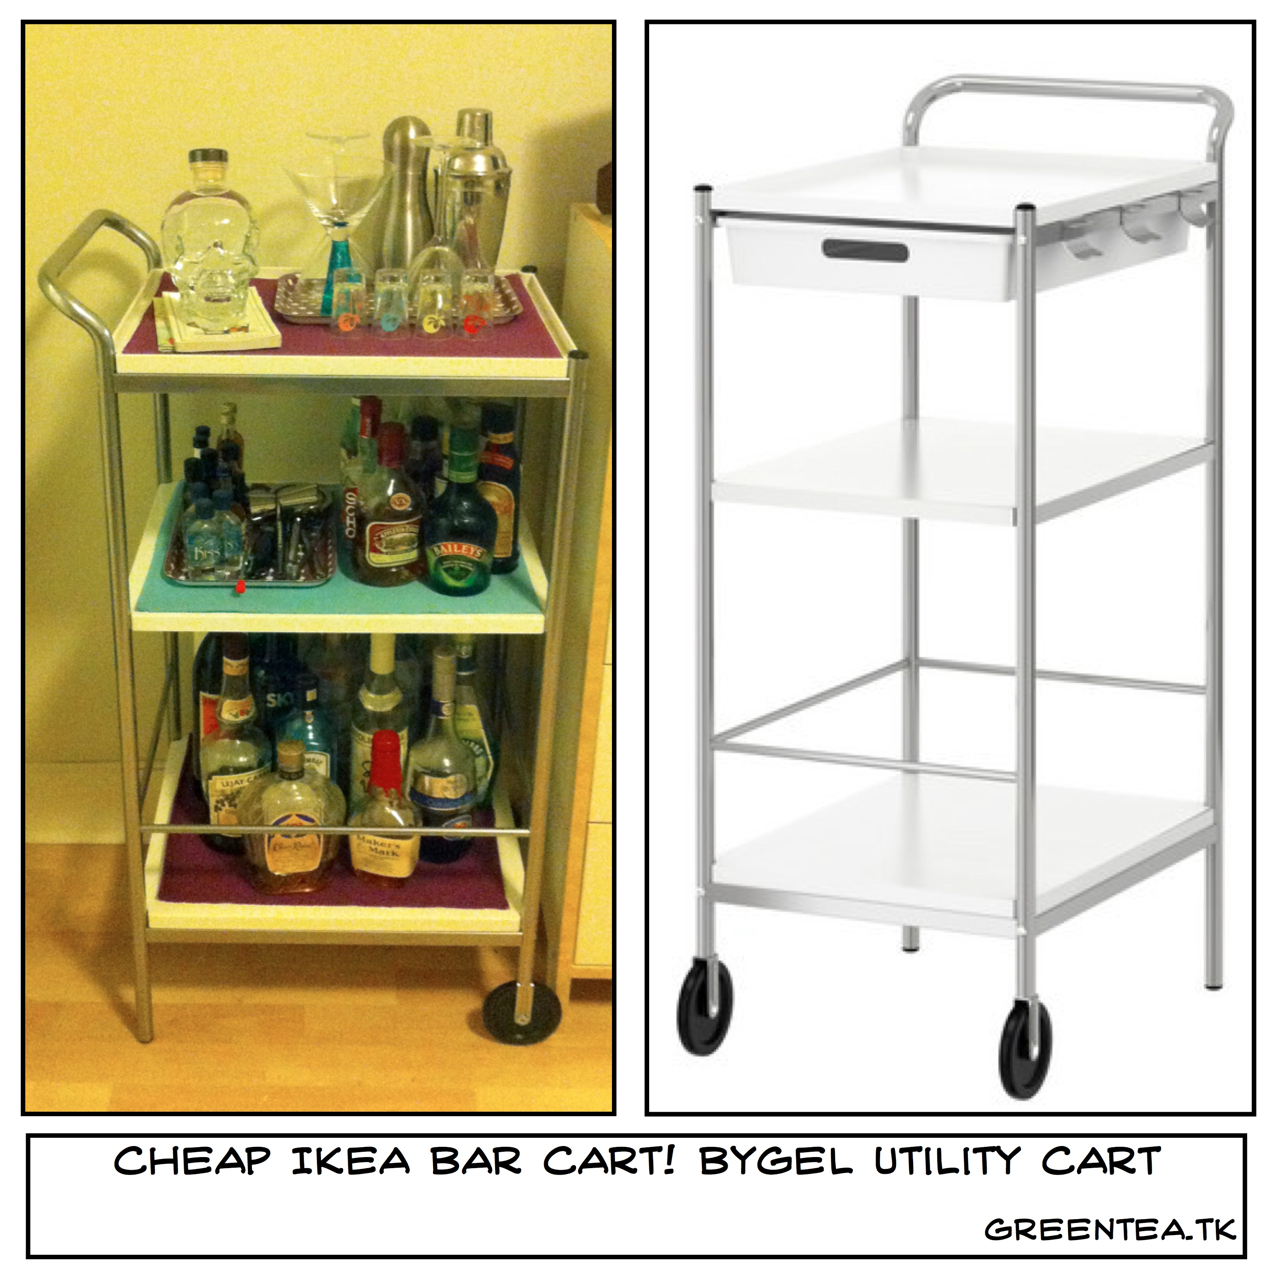 island carts ikea stenstorp kitchen microwave carts with storage  ~ Ikea Bygel Kitchen Utility Cart Island Organizer